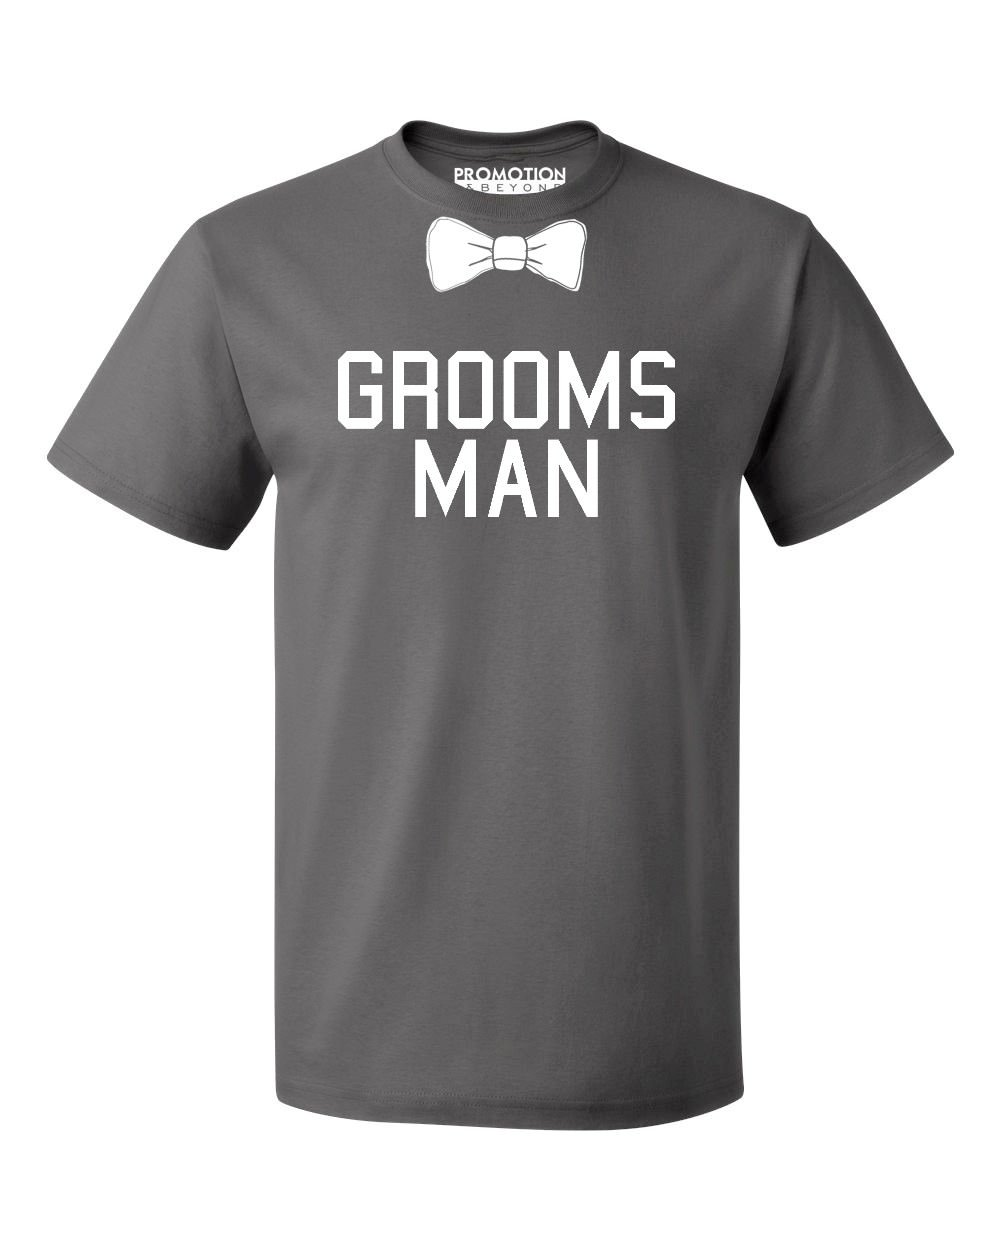 Promotion Beyond Grooms Man Wedding Bachelor Party T Shirt 8702